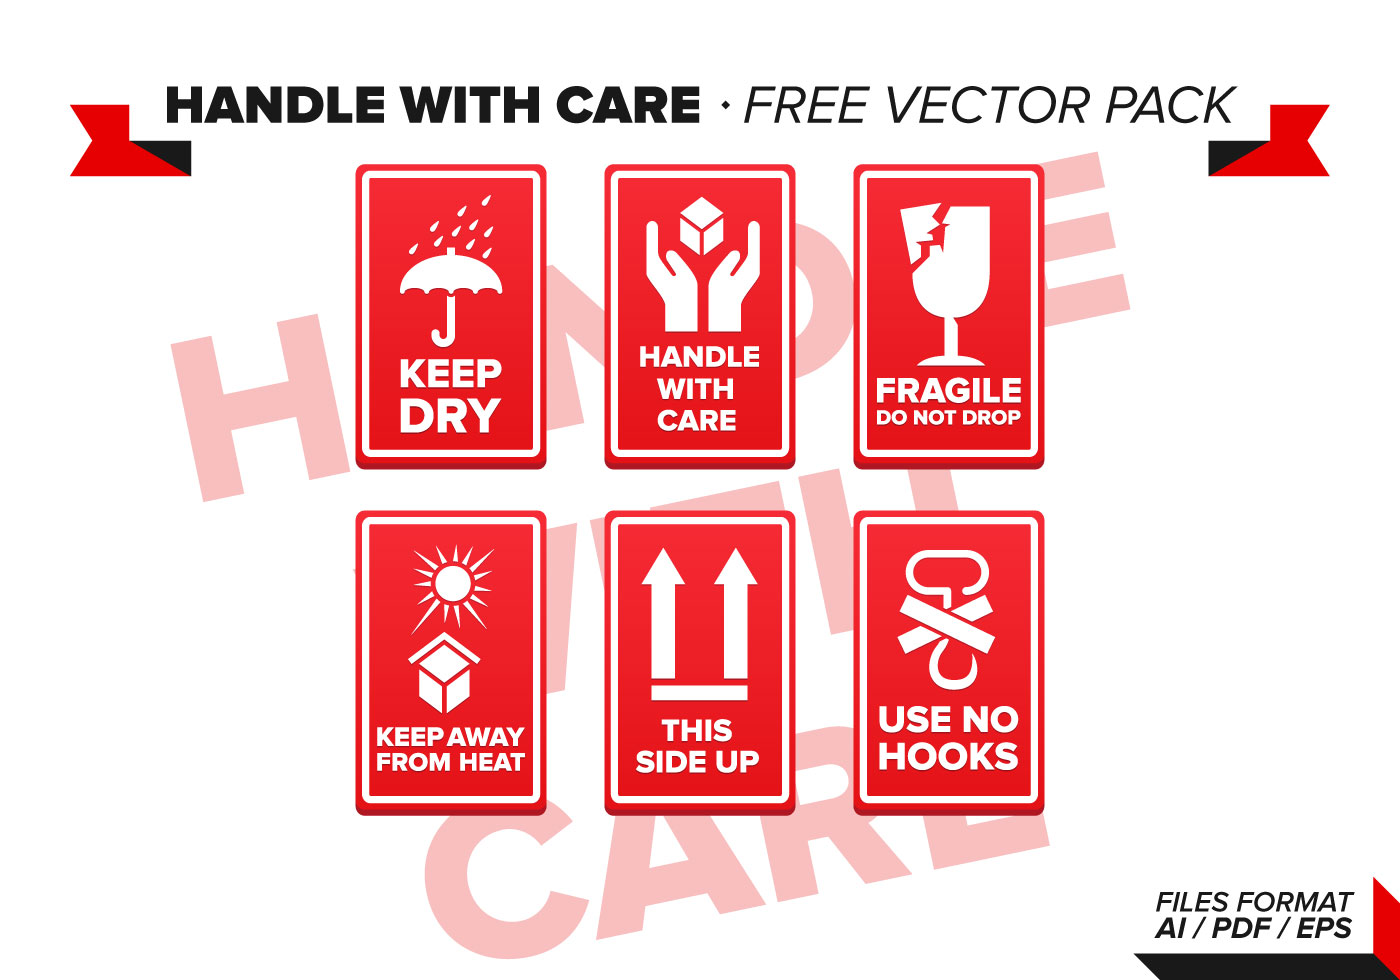 handle-with-care-free-vector-pack.jpg